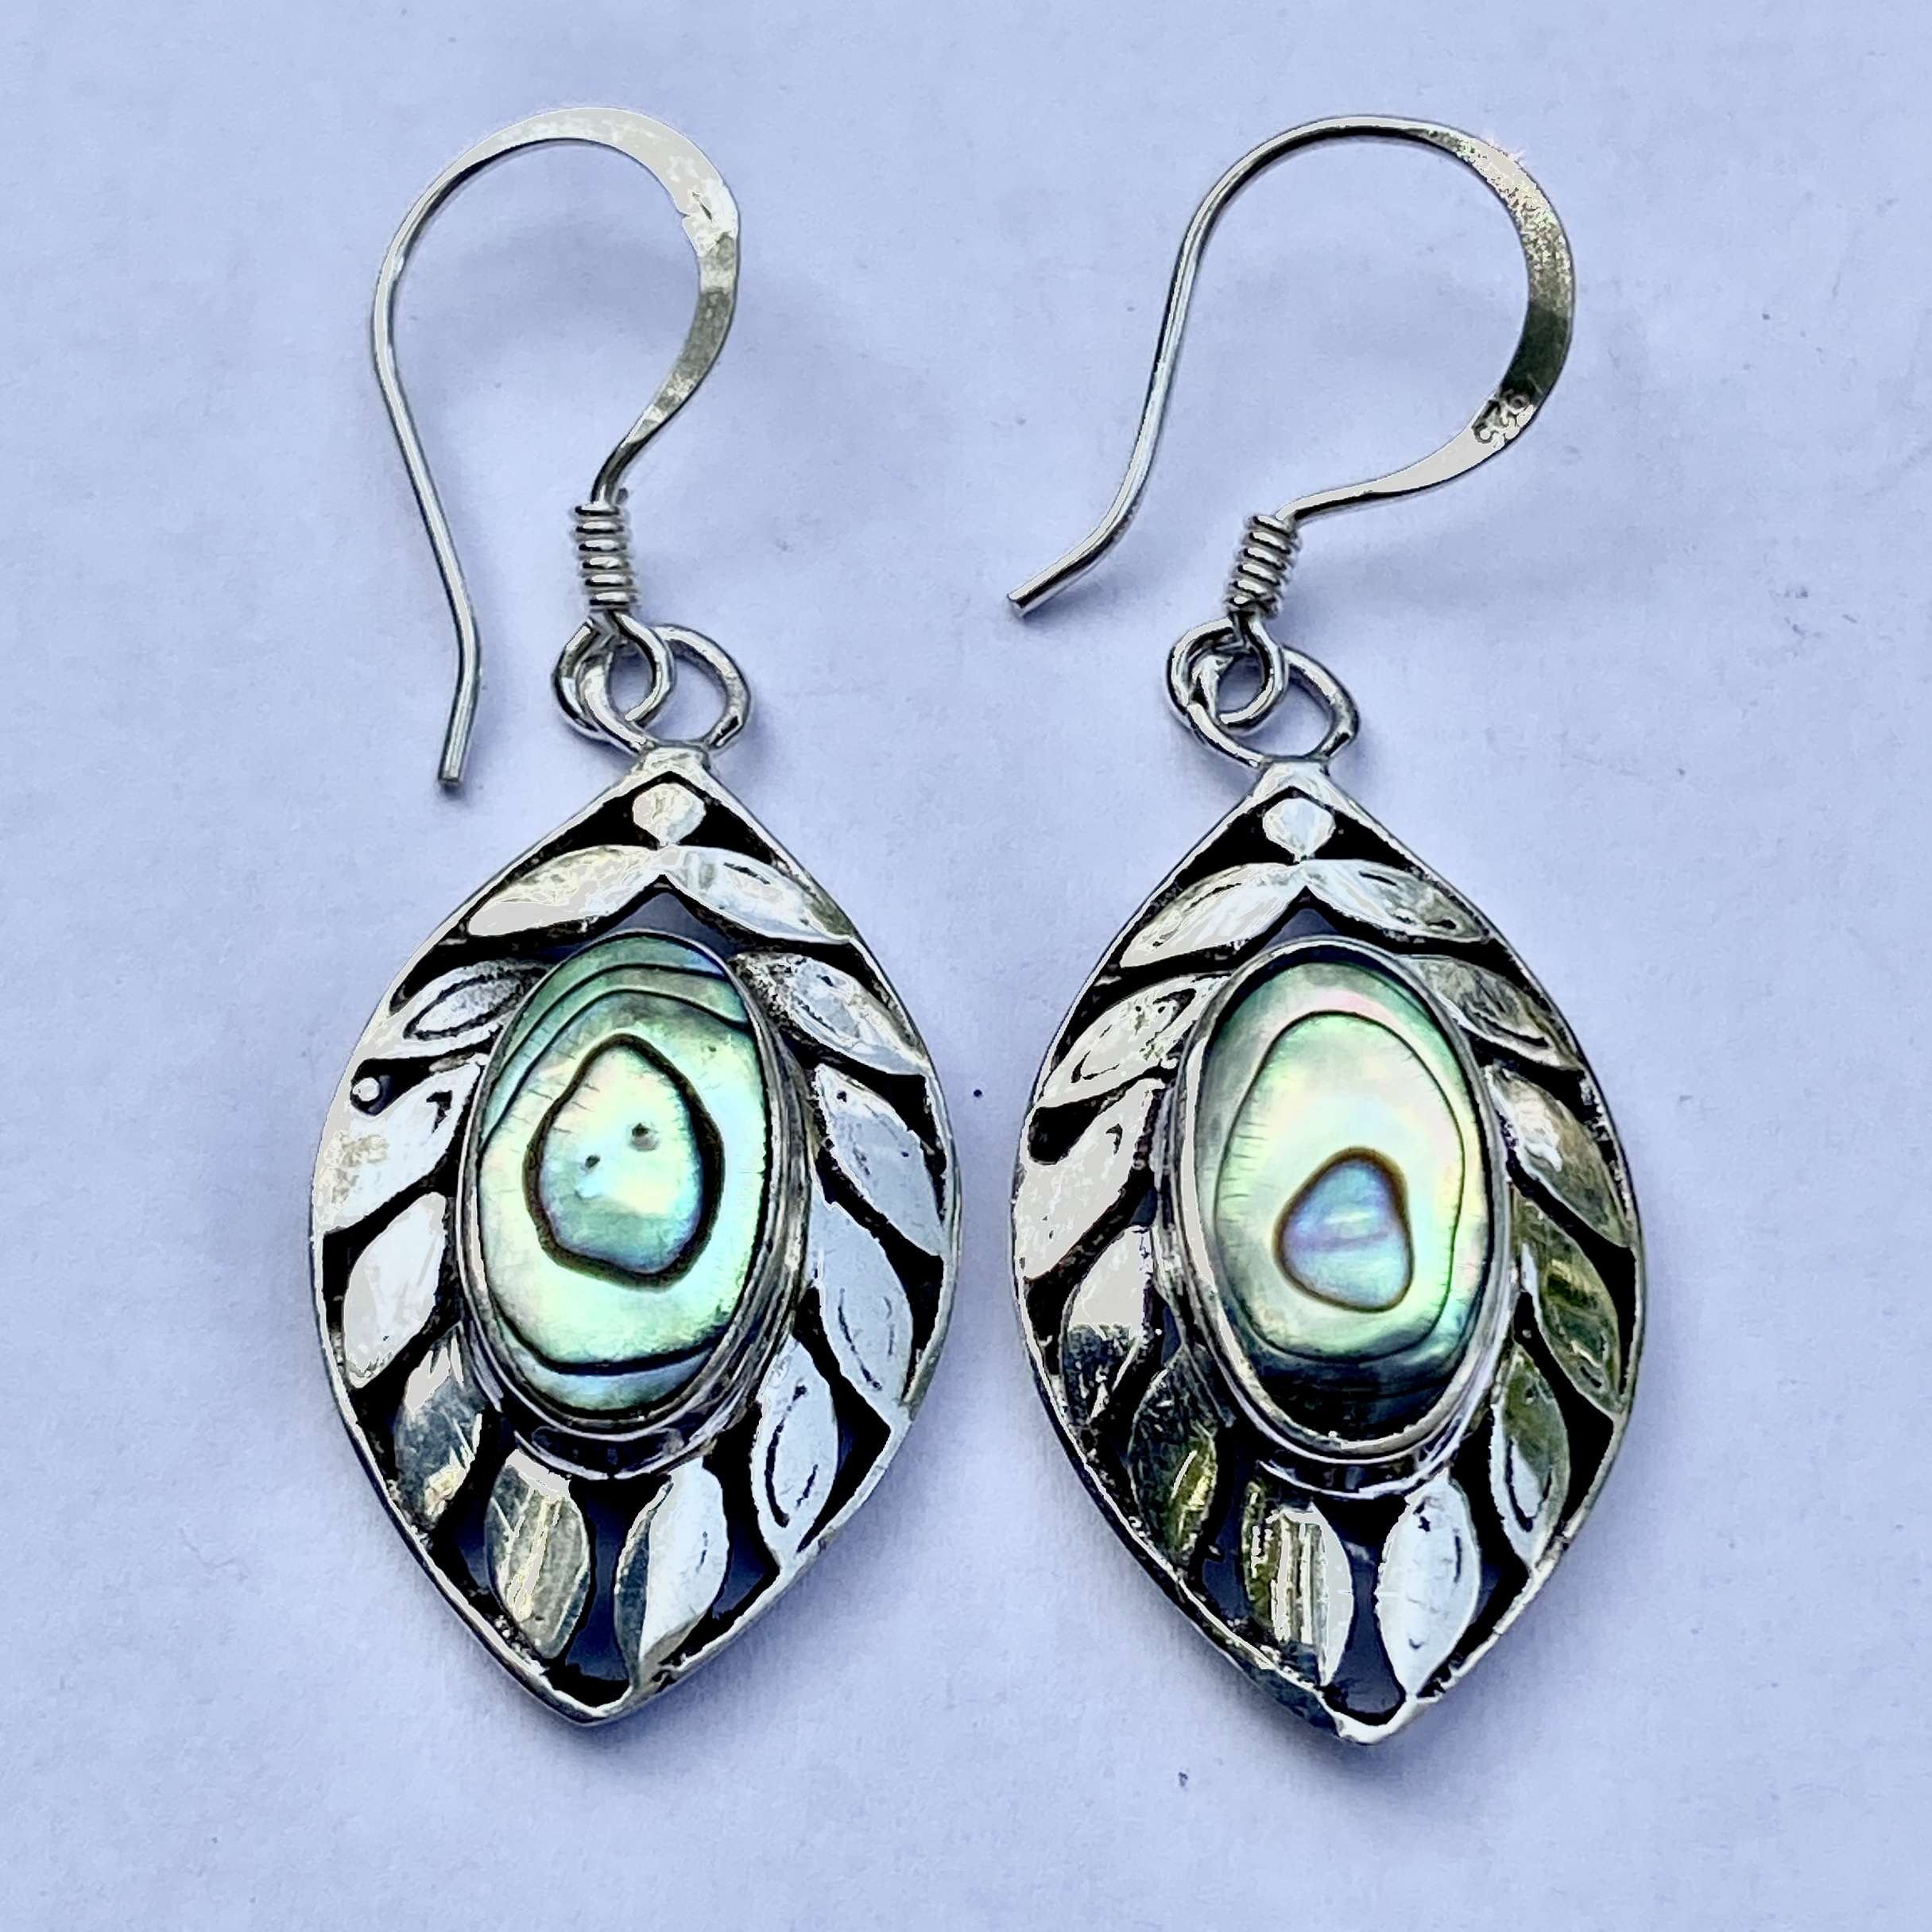 (HANDMADE UNIQUE 925 BALI SILVER EARRINGS WITH ABALONE)